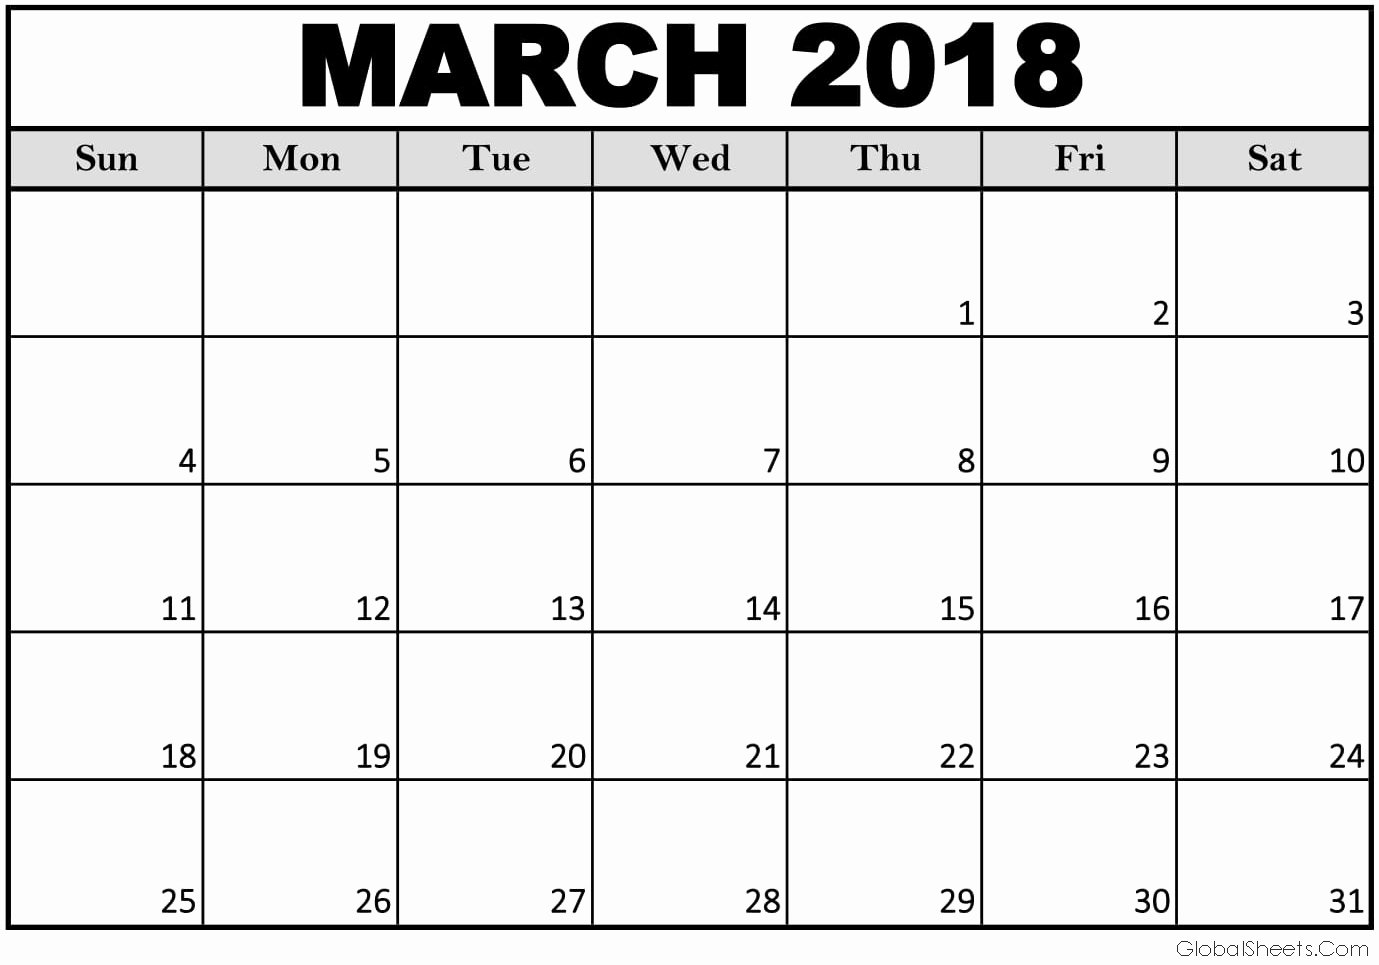 Create Calendar In Word Fresh March 2018 Calendar Word Document